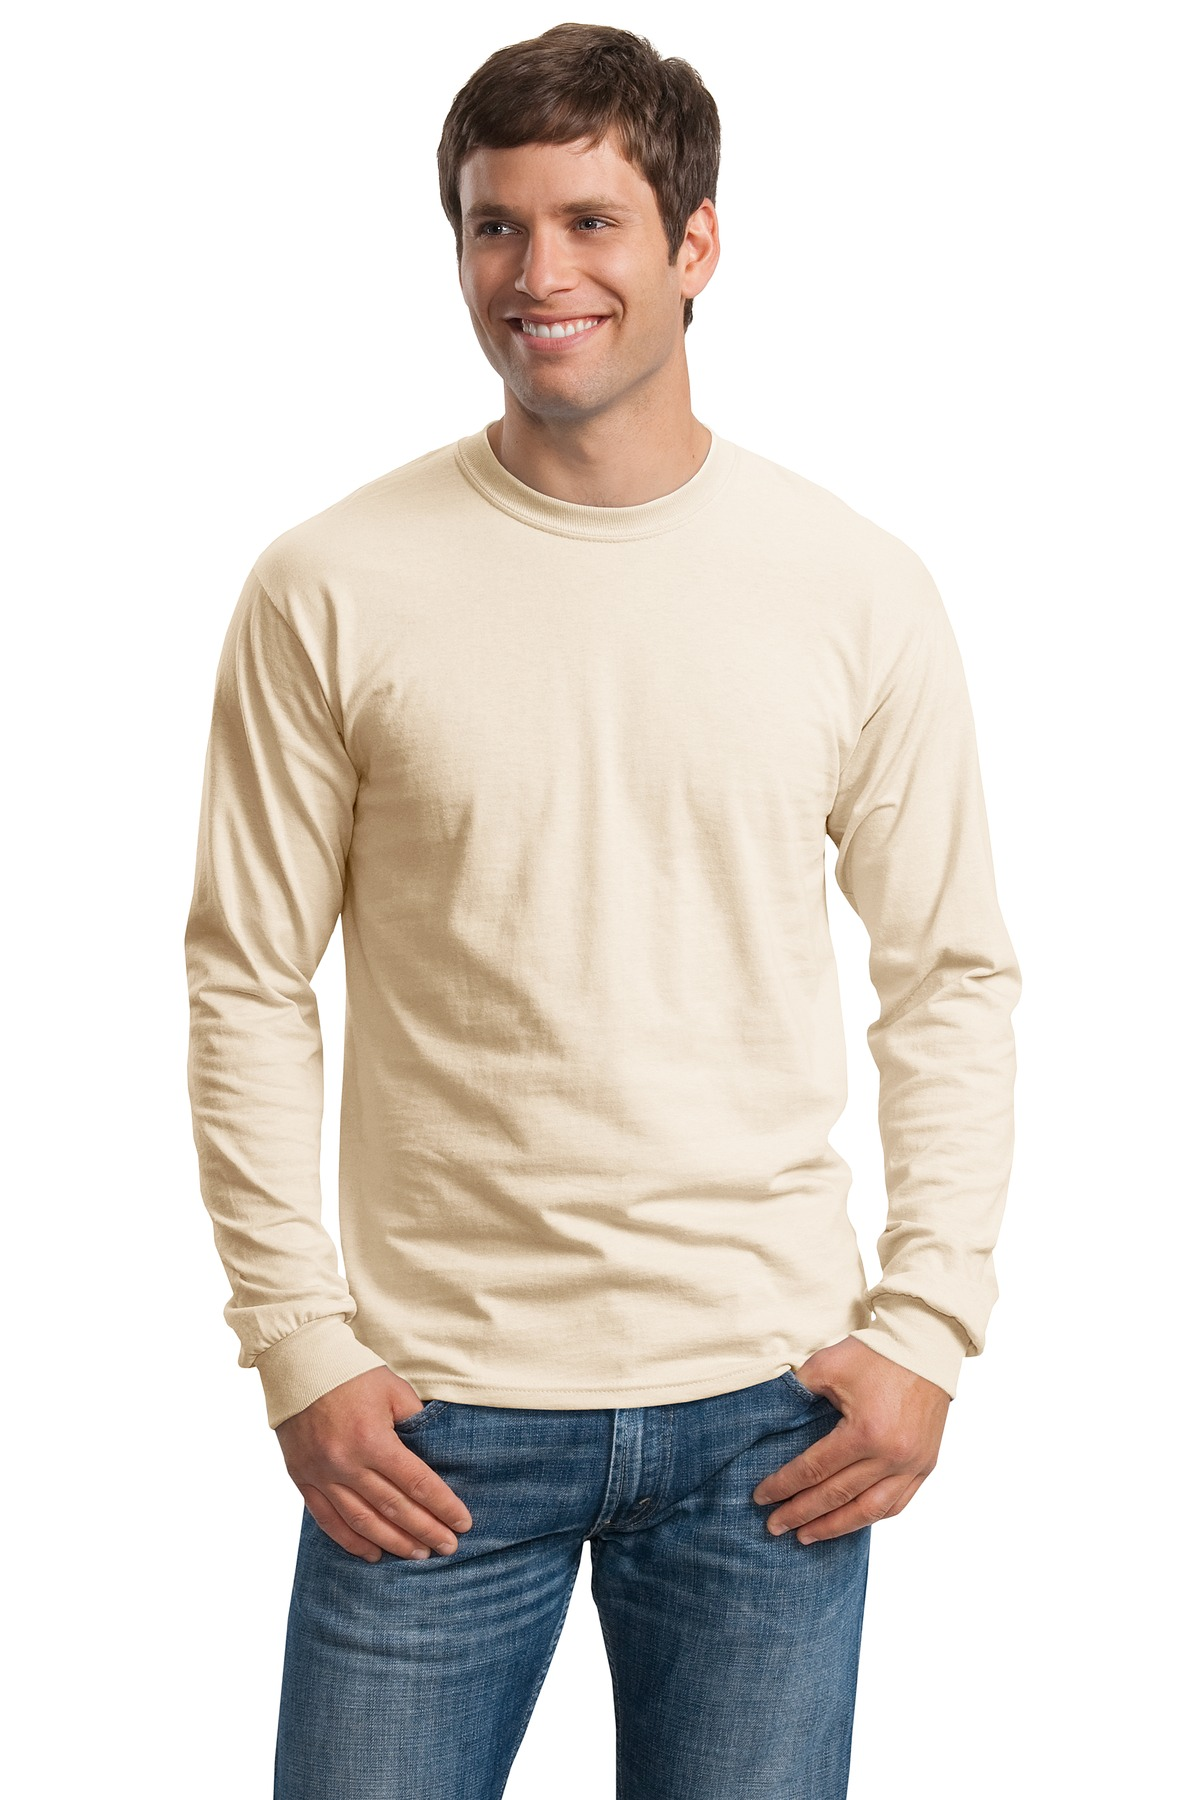 Gildan ®  - Ultra Cotton ®  100% Cotton Long Sleeve T-Shirt.  G2400